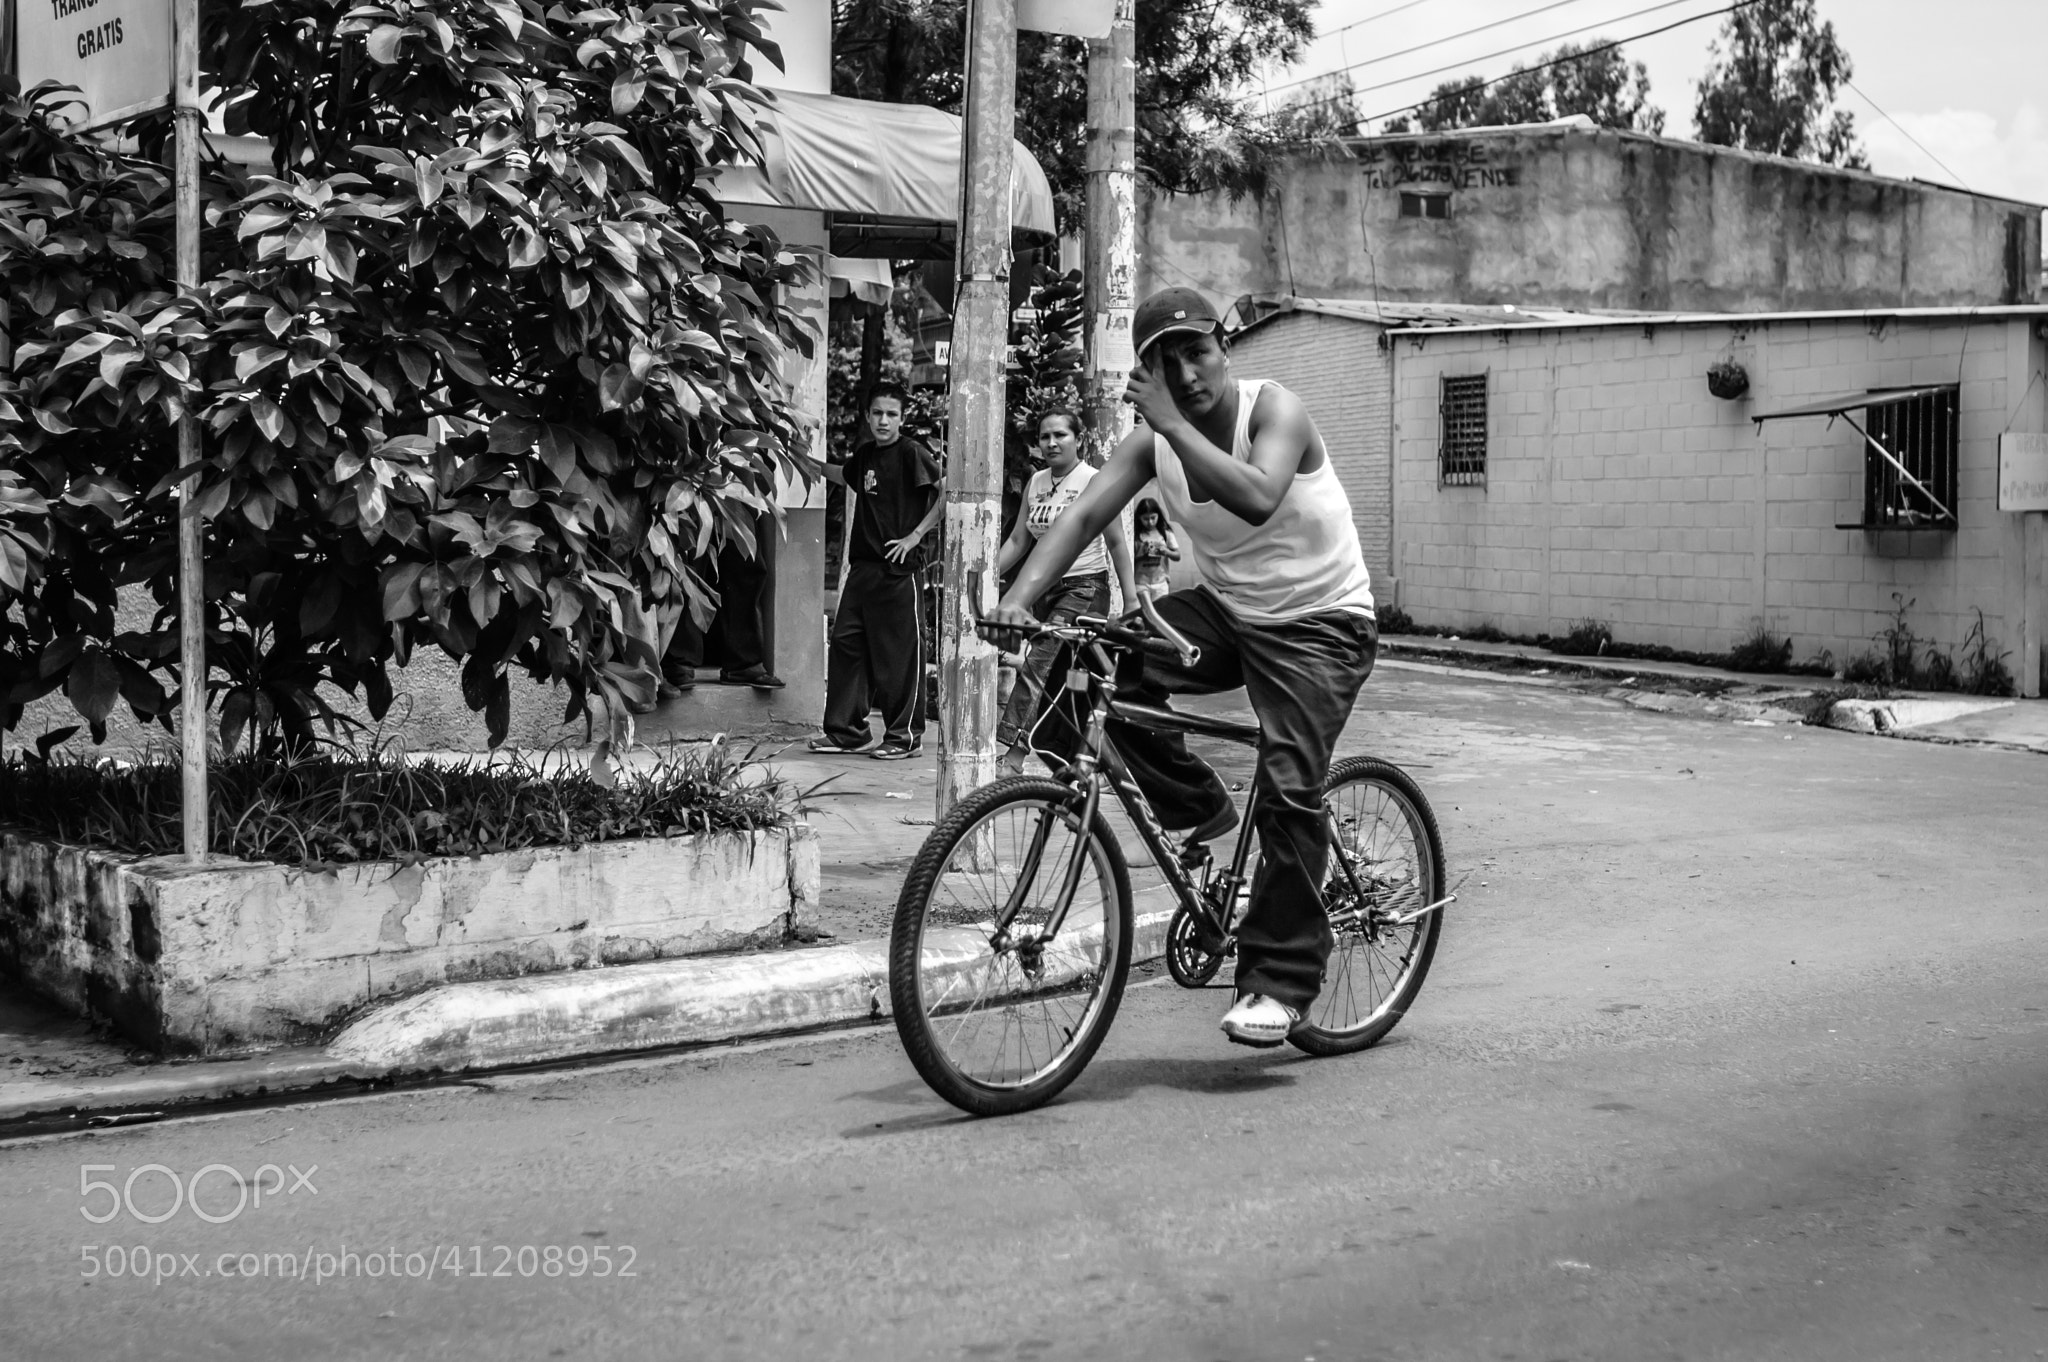 Photograph Passerby on Bicycle in El Salvador  by Matt George on 500px